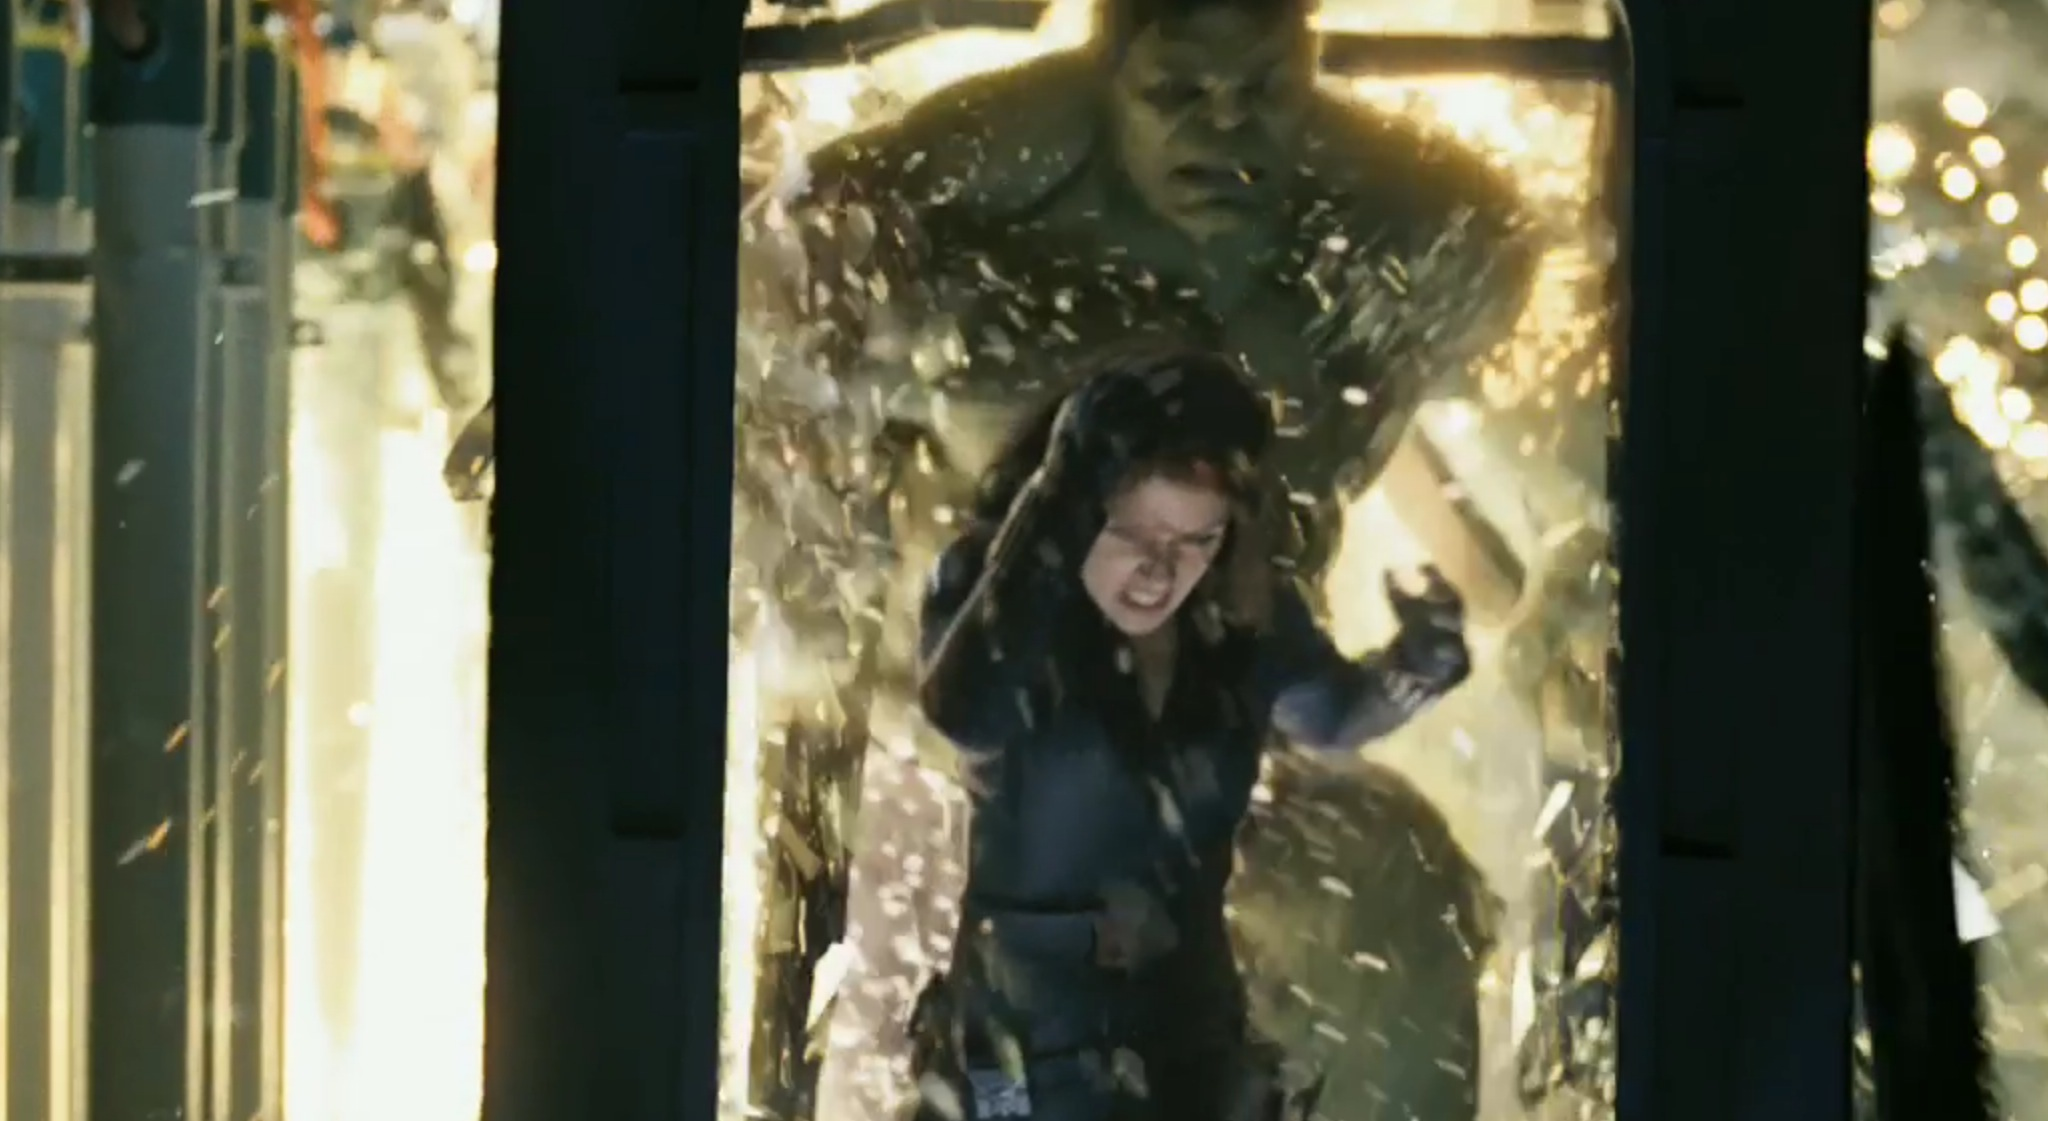 New Avengers trailer proves Joss Whedon can bring the boom and sizzle with the best